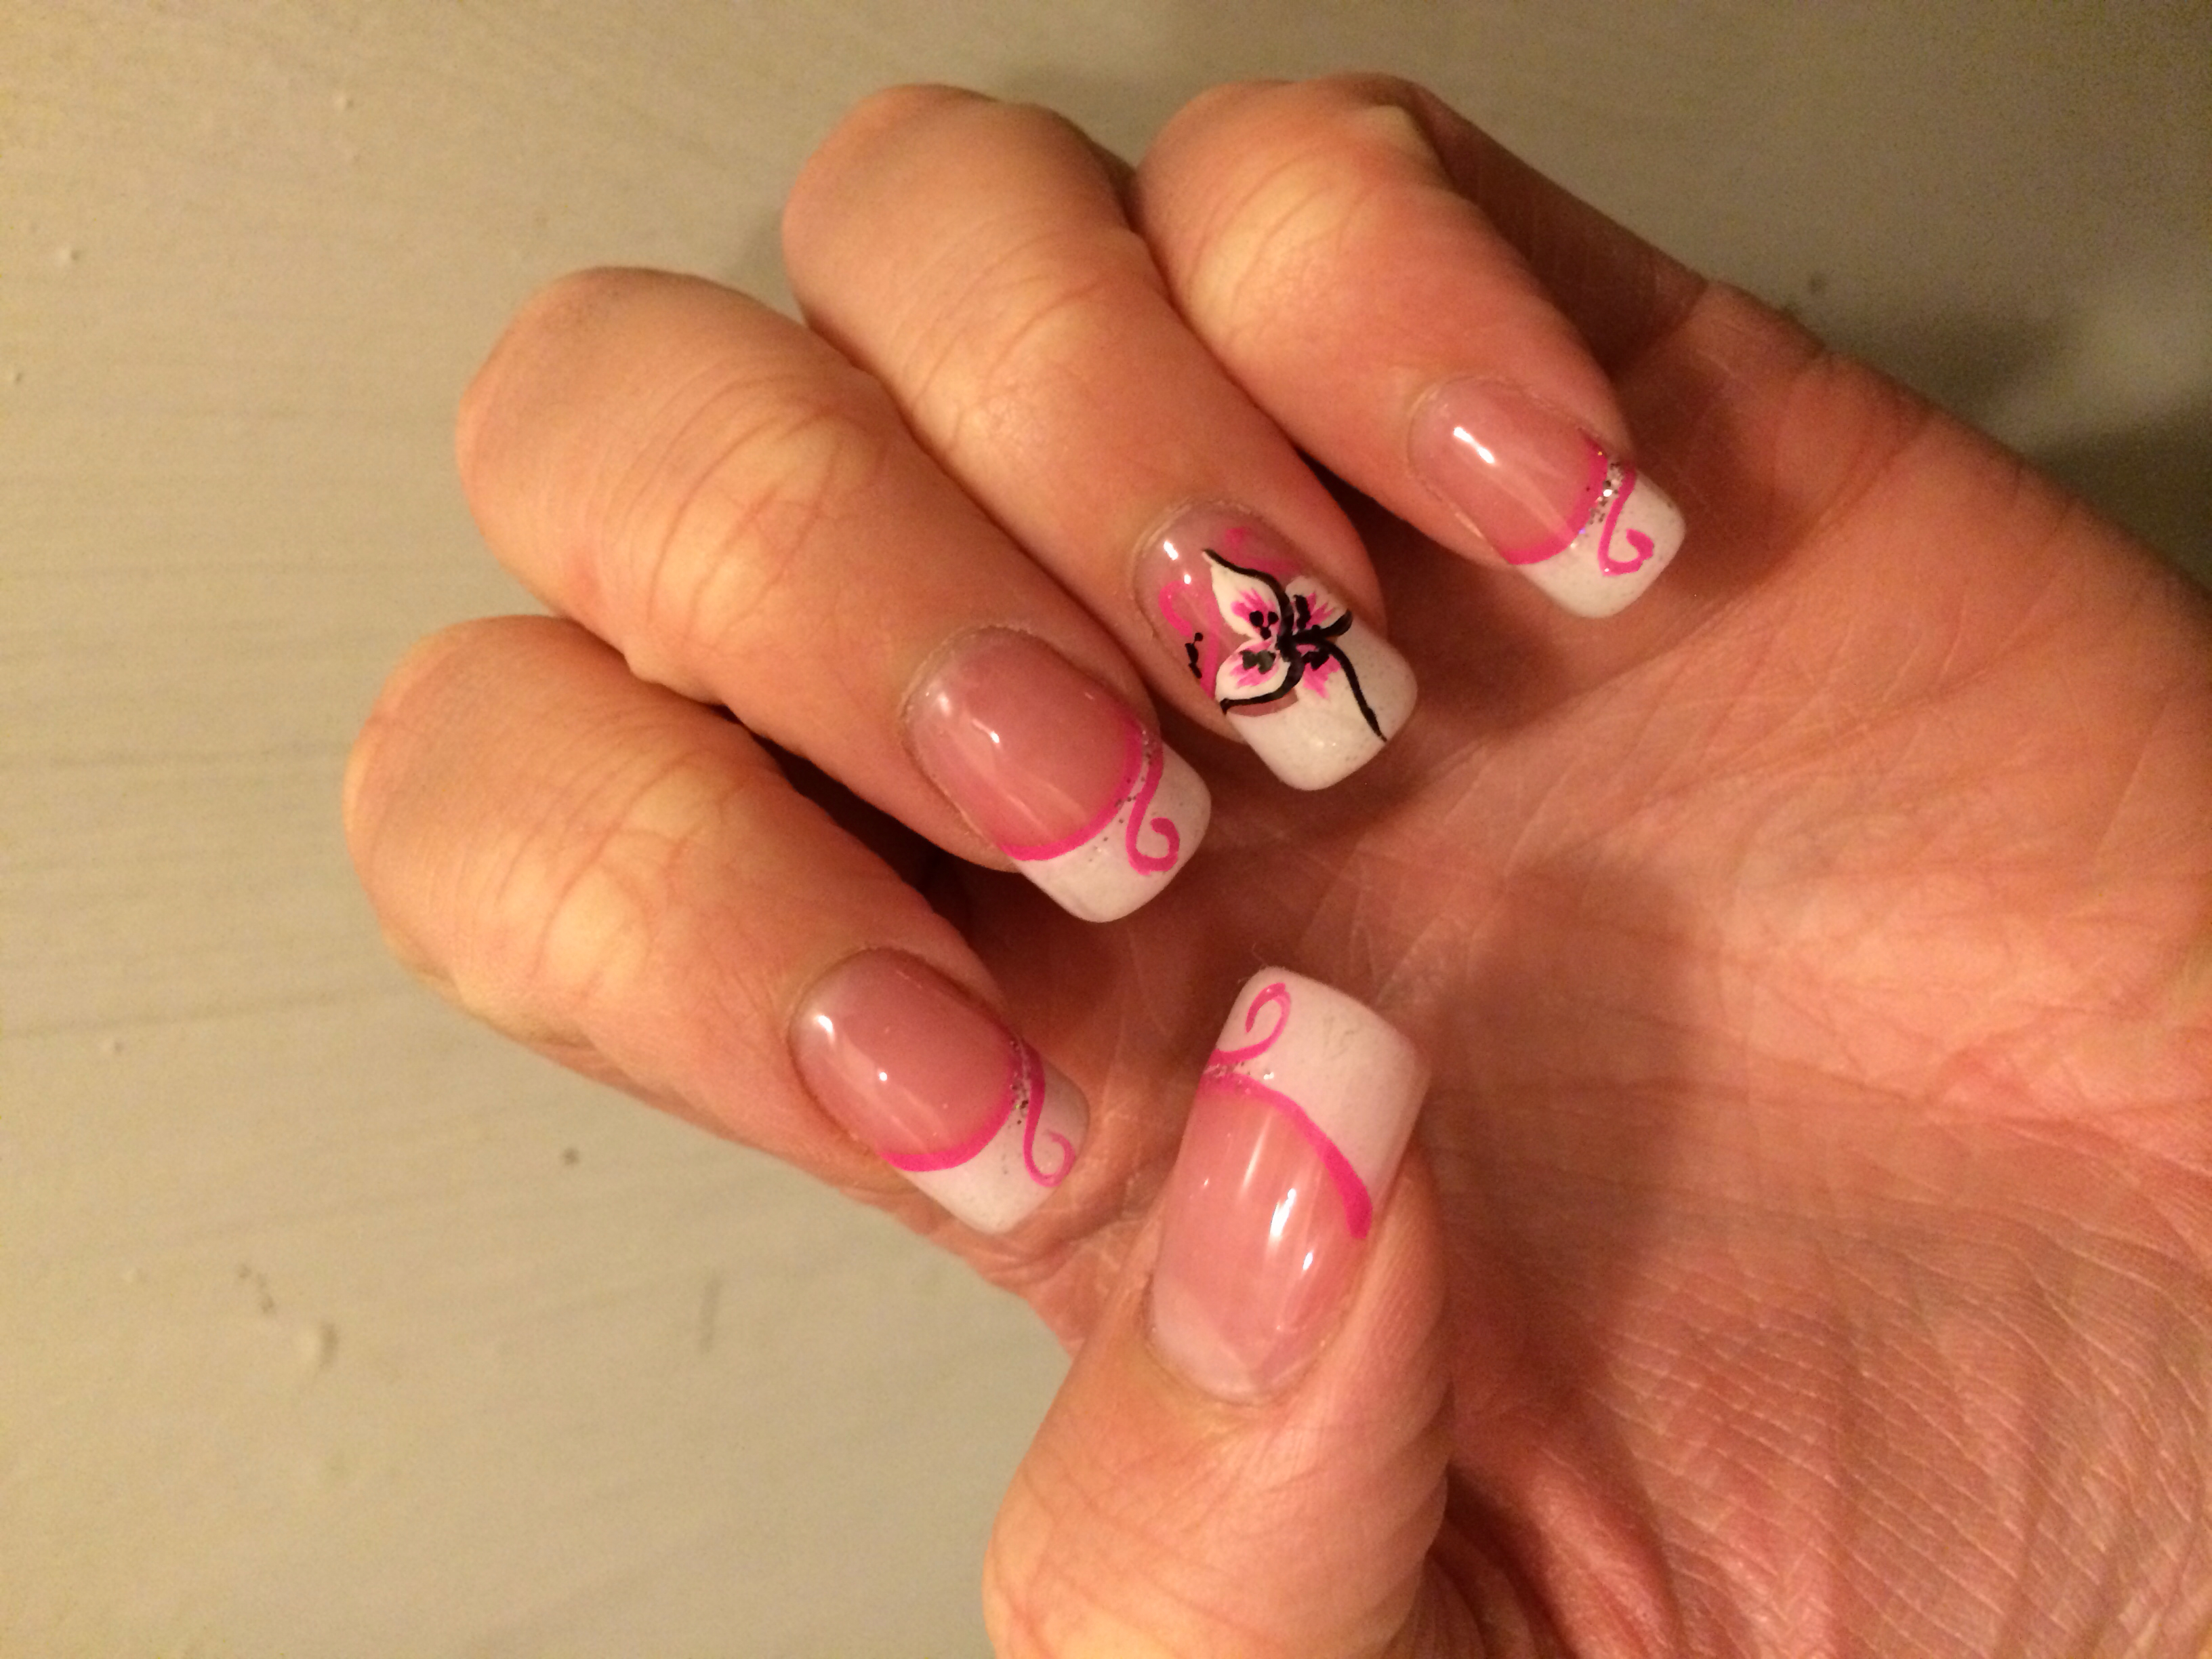 French Tip Nails with Flower Design